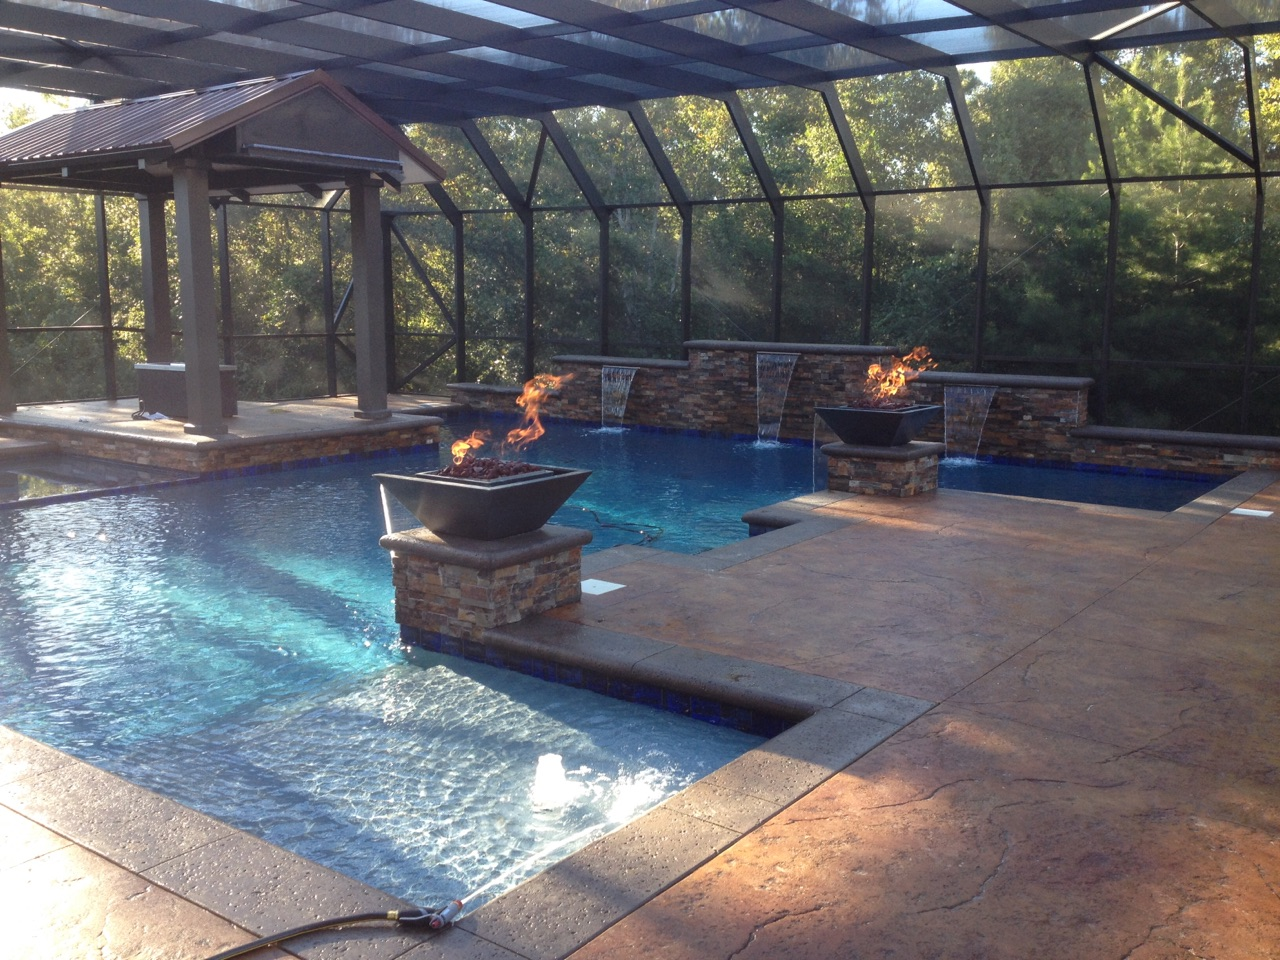 Gunite pool with fire features